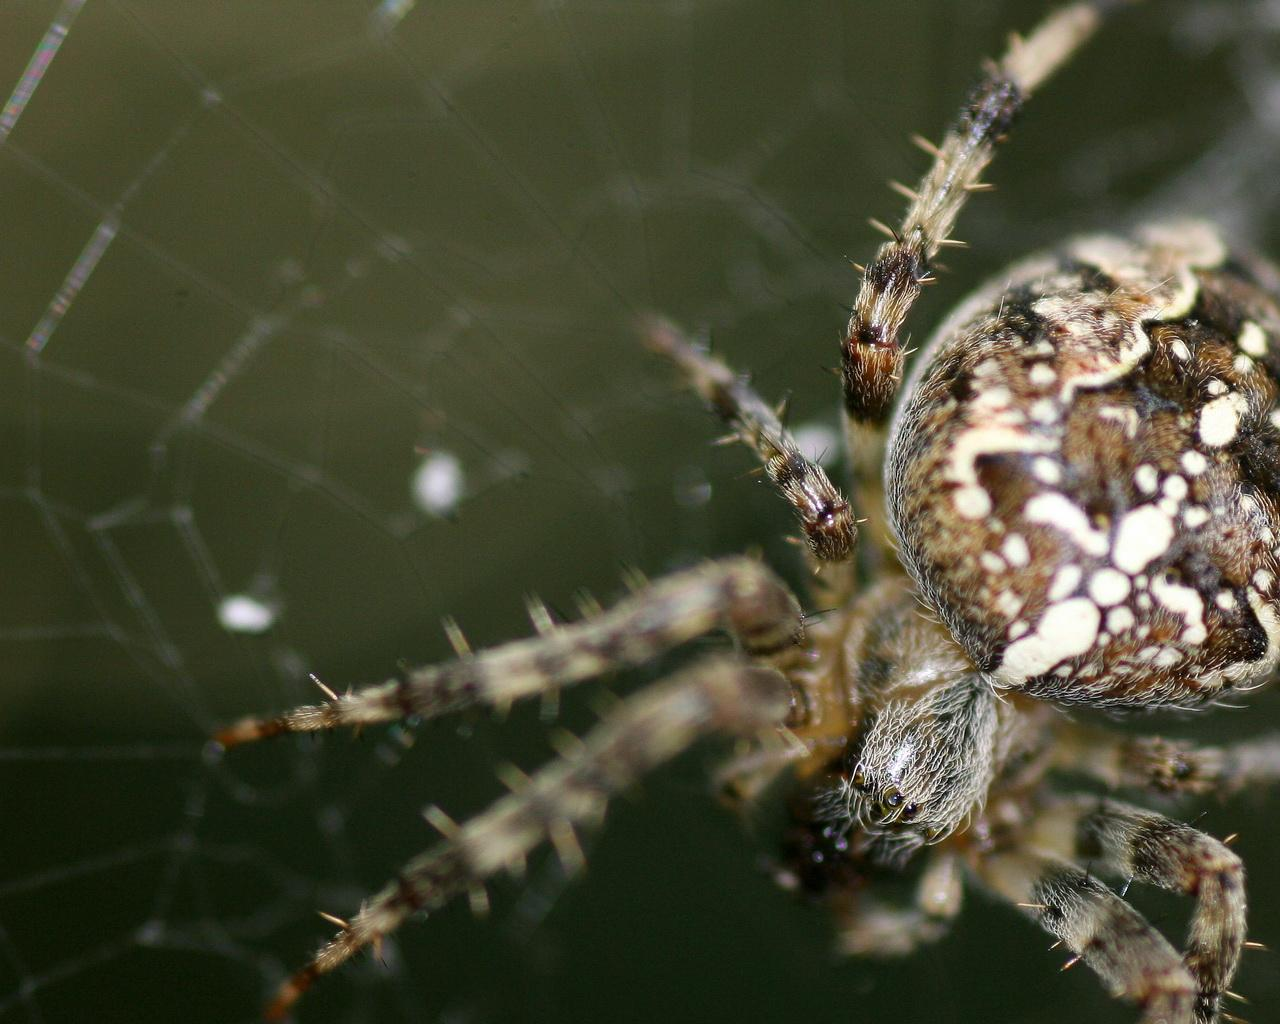 spider images hd